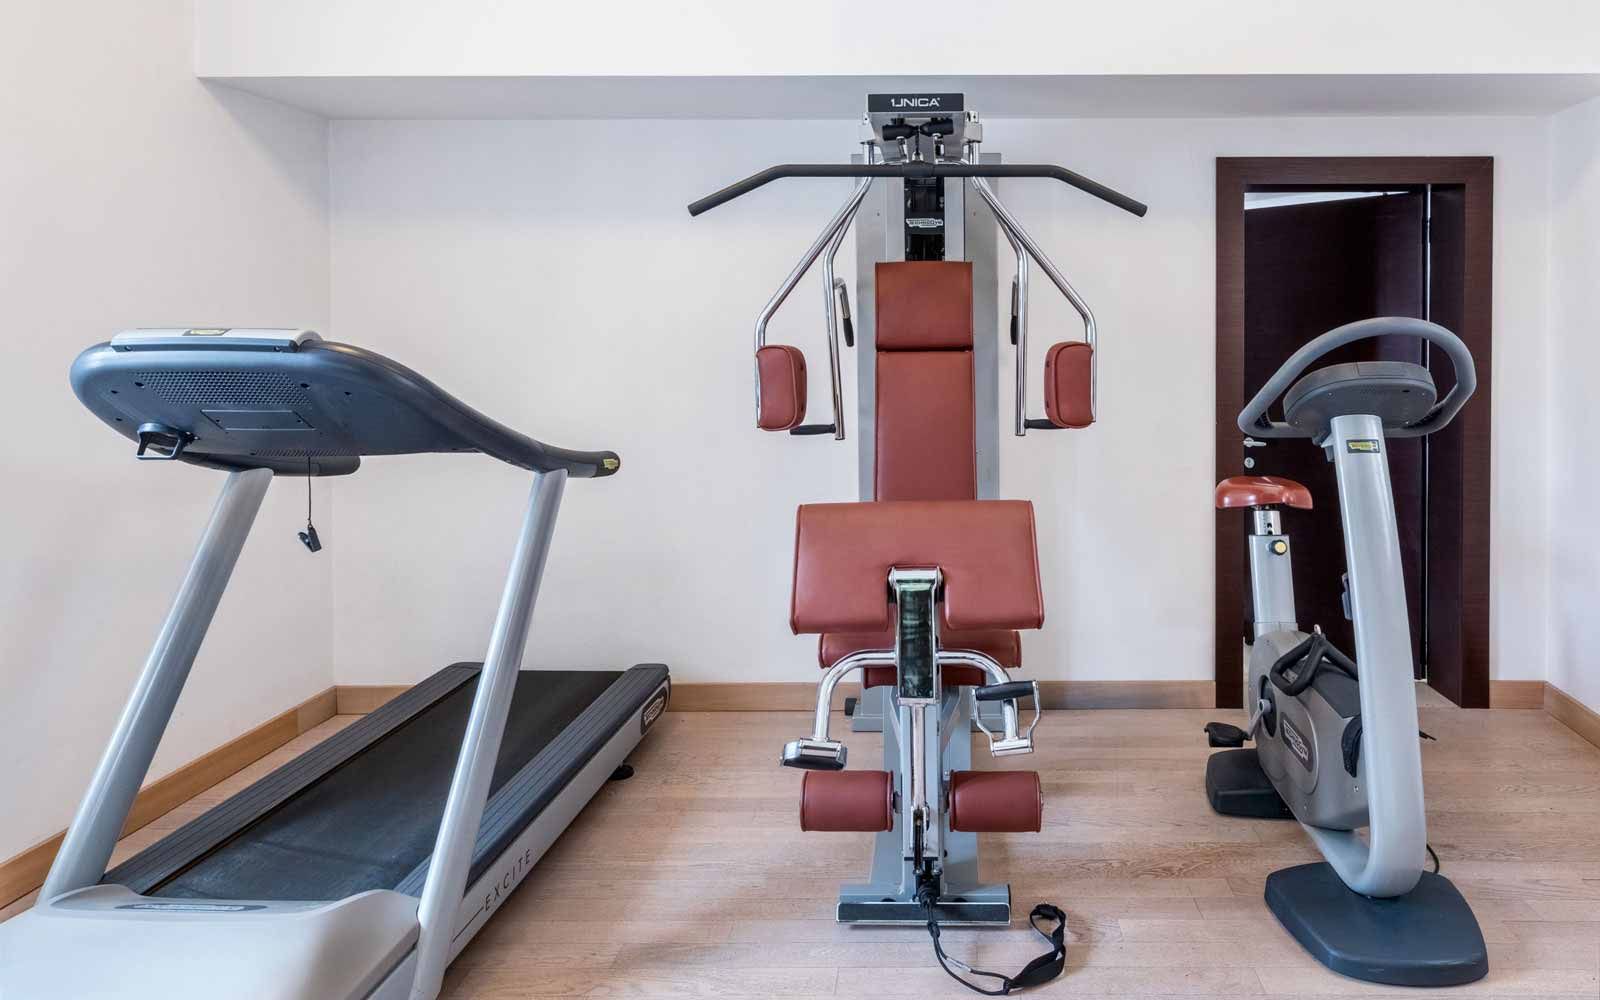 Gym Facilities at Risorgimento Resort